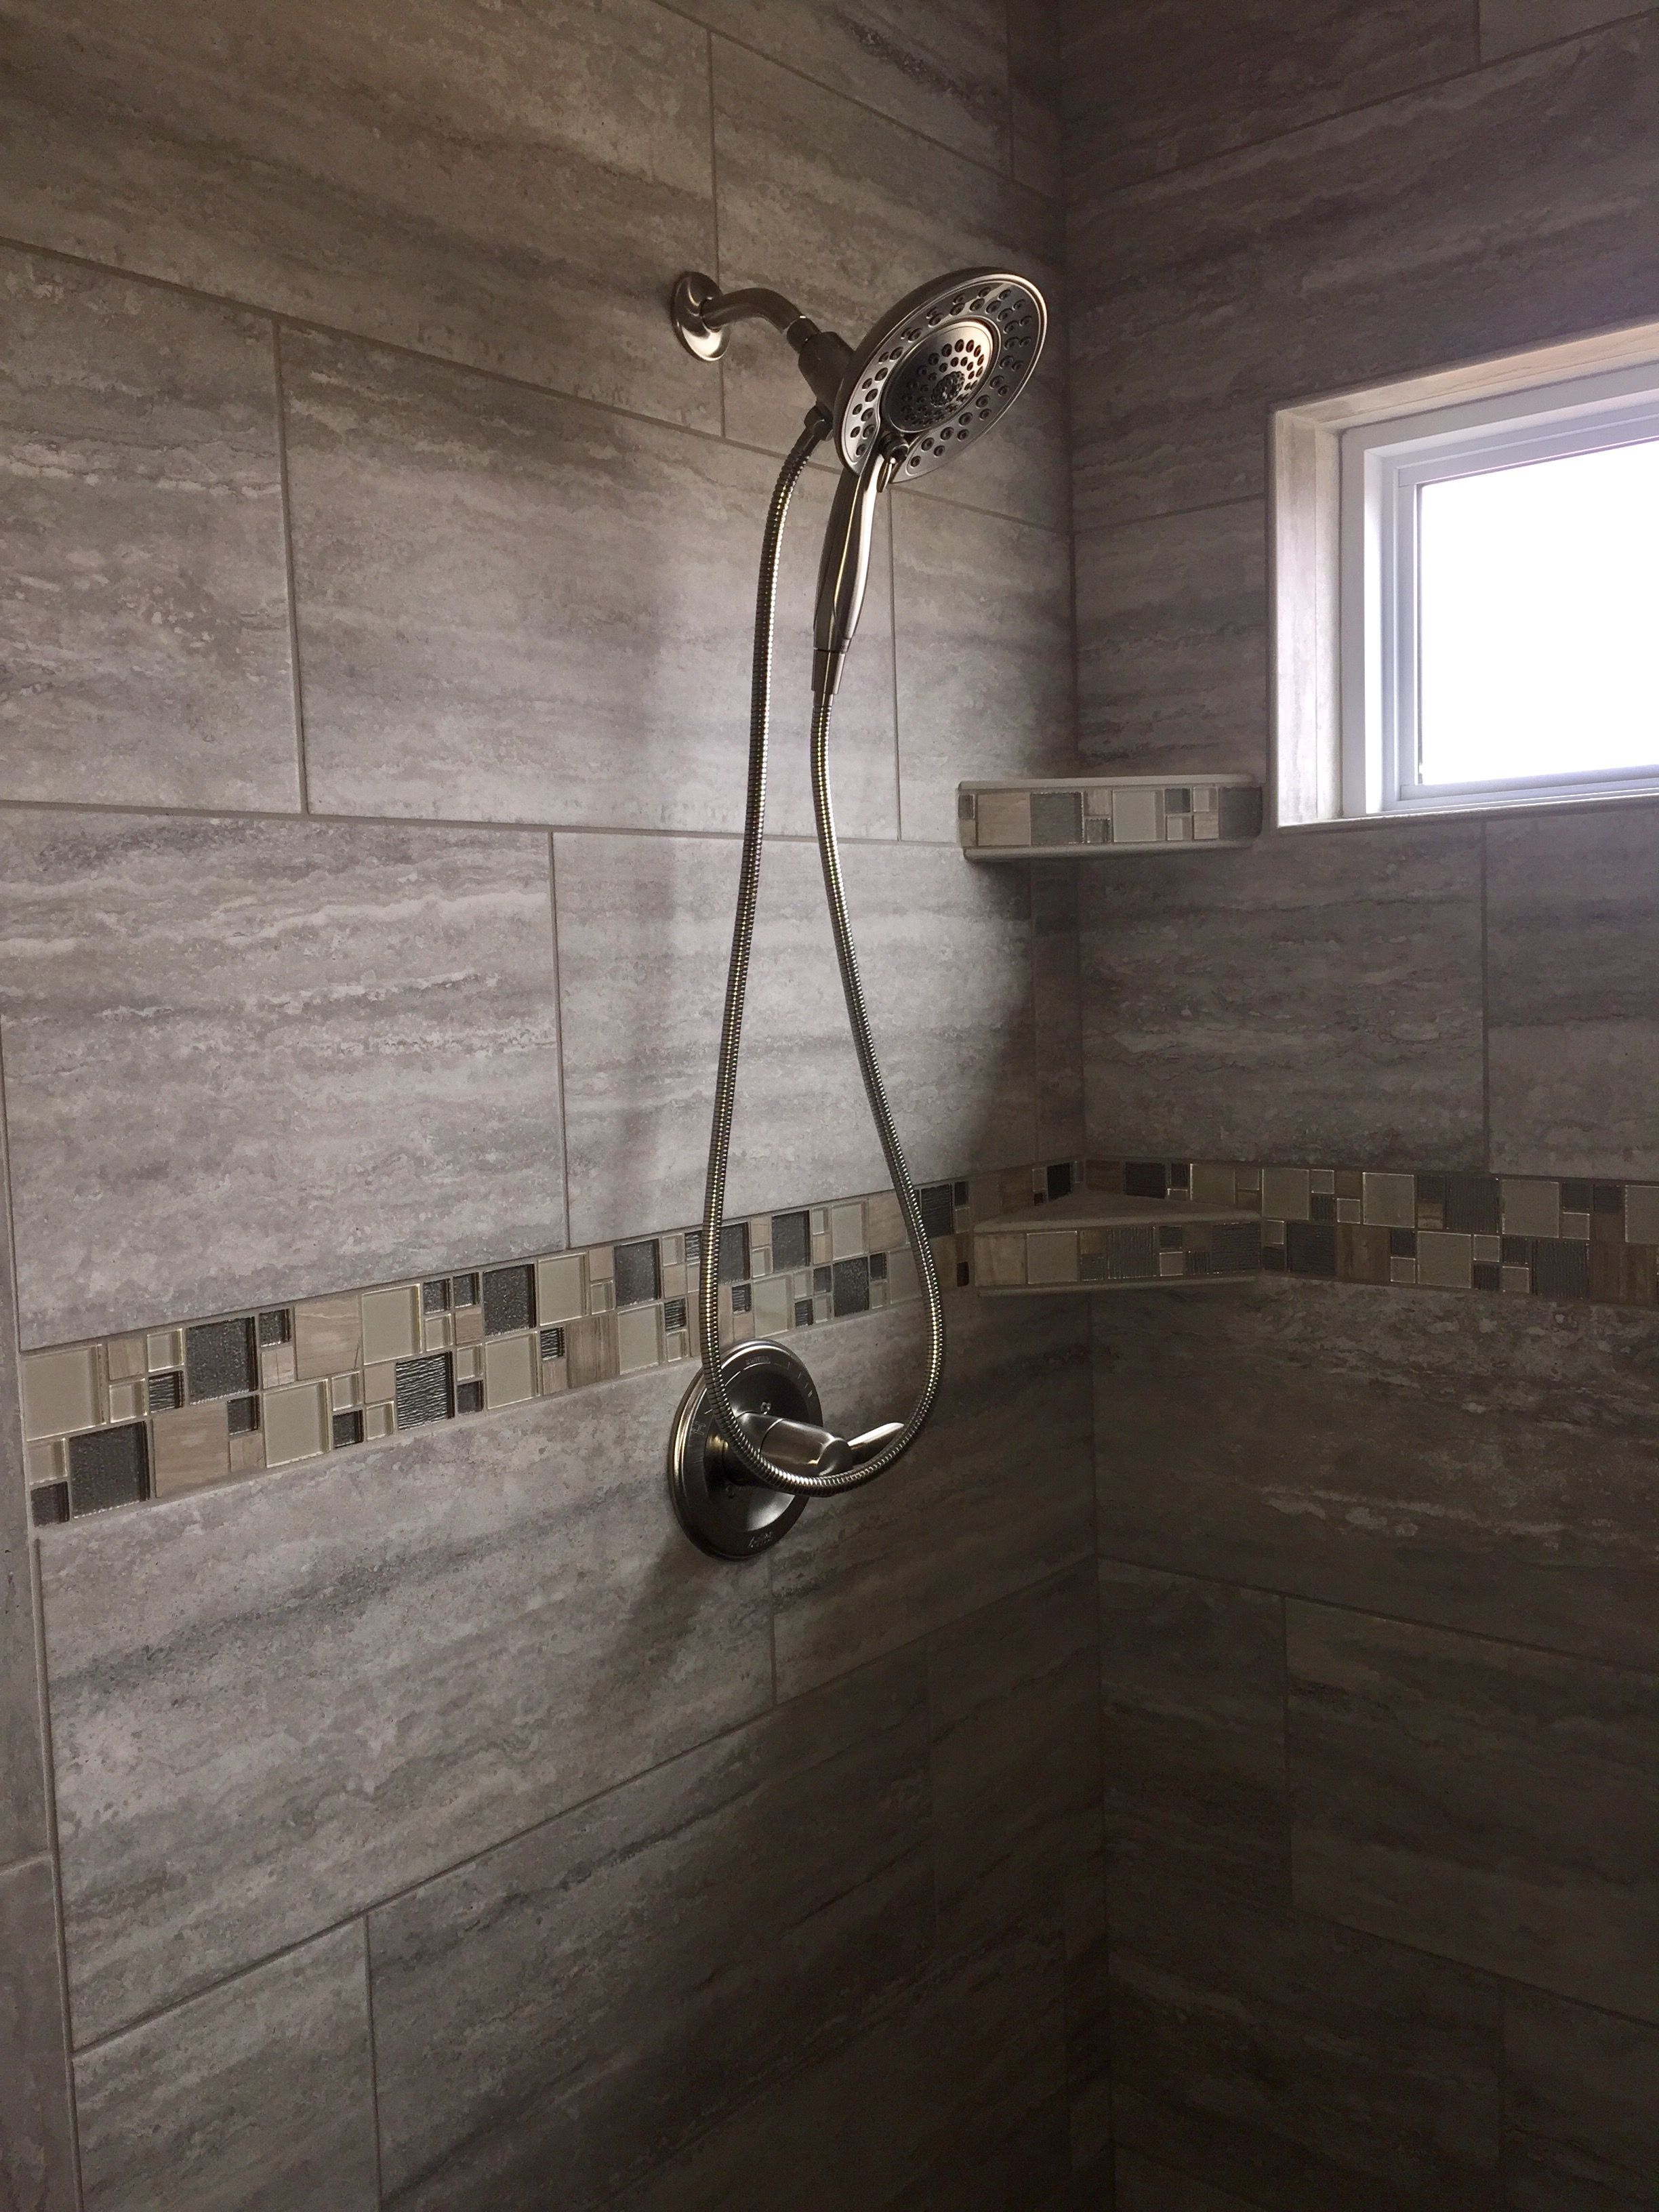 Custom Tiled Shower In A 12x24 Porcelain Tile Installed At A 1 3 Staggered Horizontal With A Stone And Glass A Custom Tile Shower Shower Tile Tile Installation